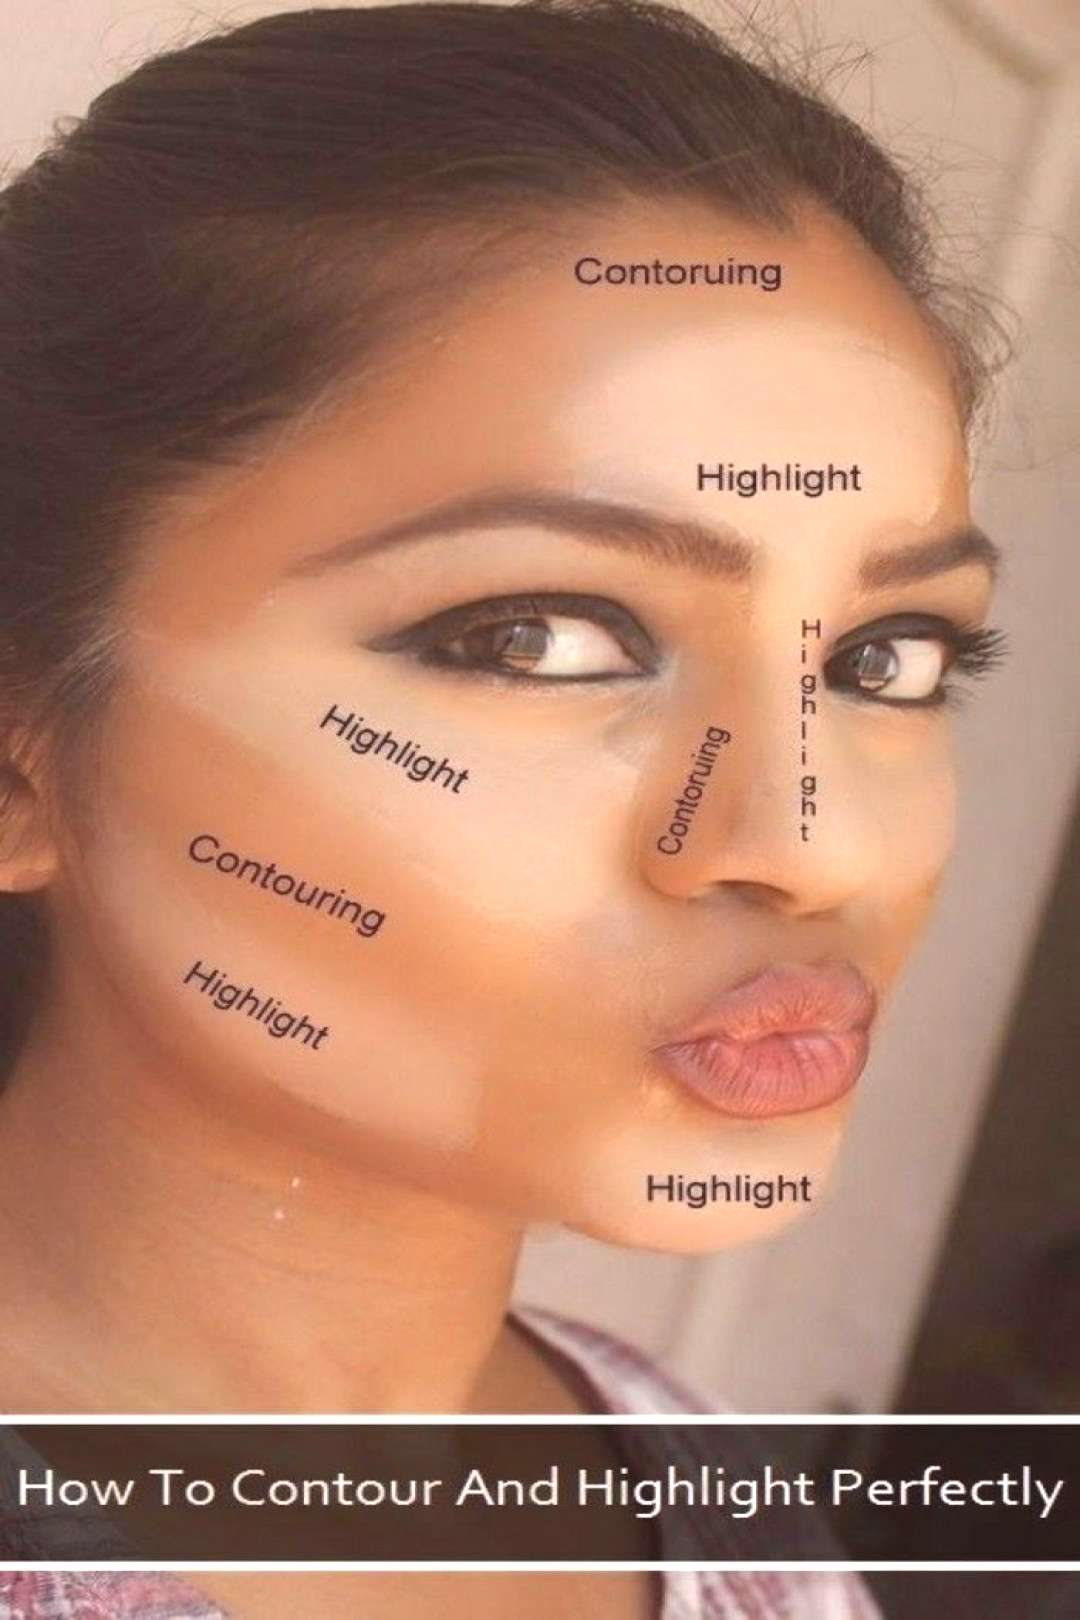 Here are several suggestions for a quick contouring makeup tutorial - #archzine